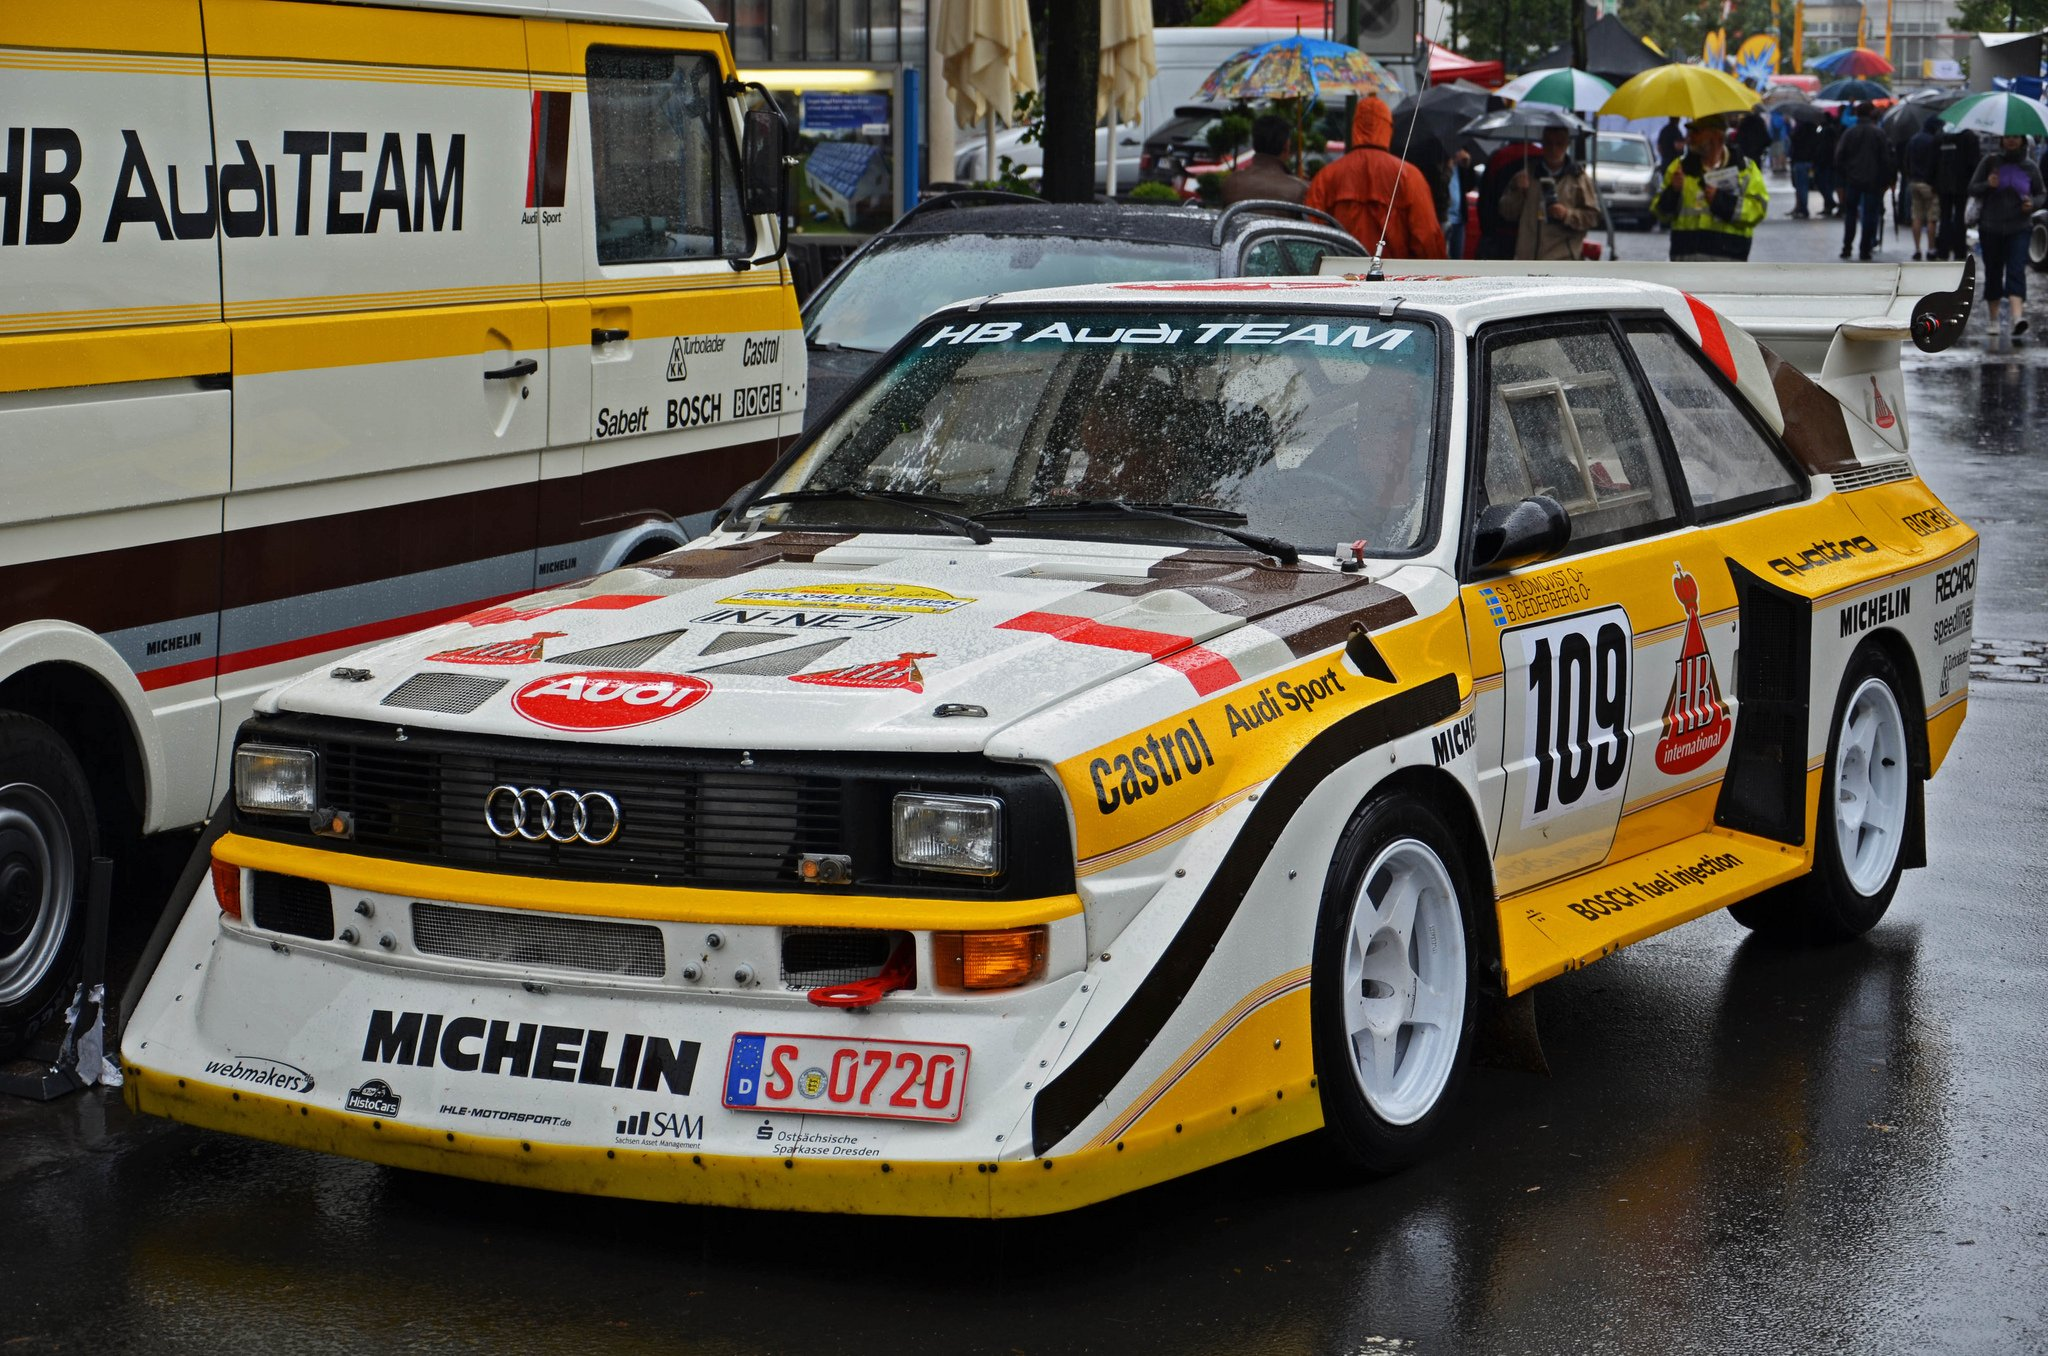 audi sport quattro rally groupe b cars sport wallpaper 2048x1356 563843 wallpaperup. Black Bedroom Furniture Sets. Home Design Ideas